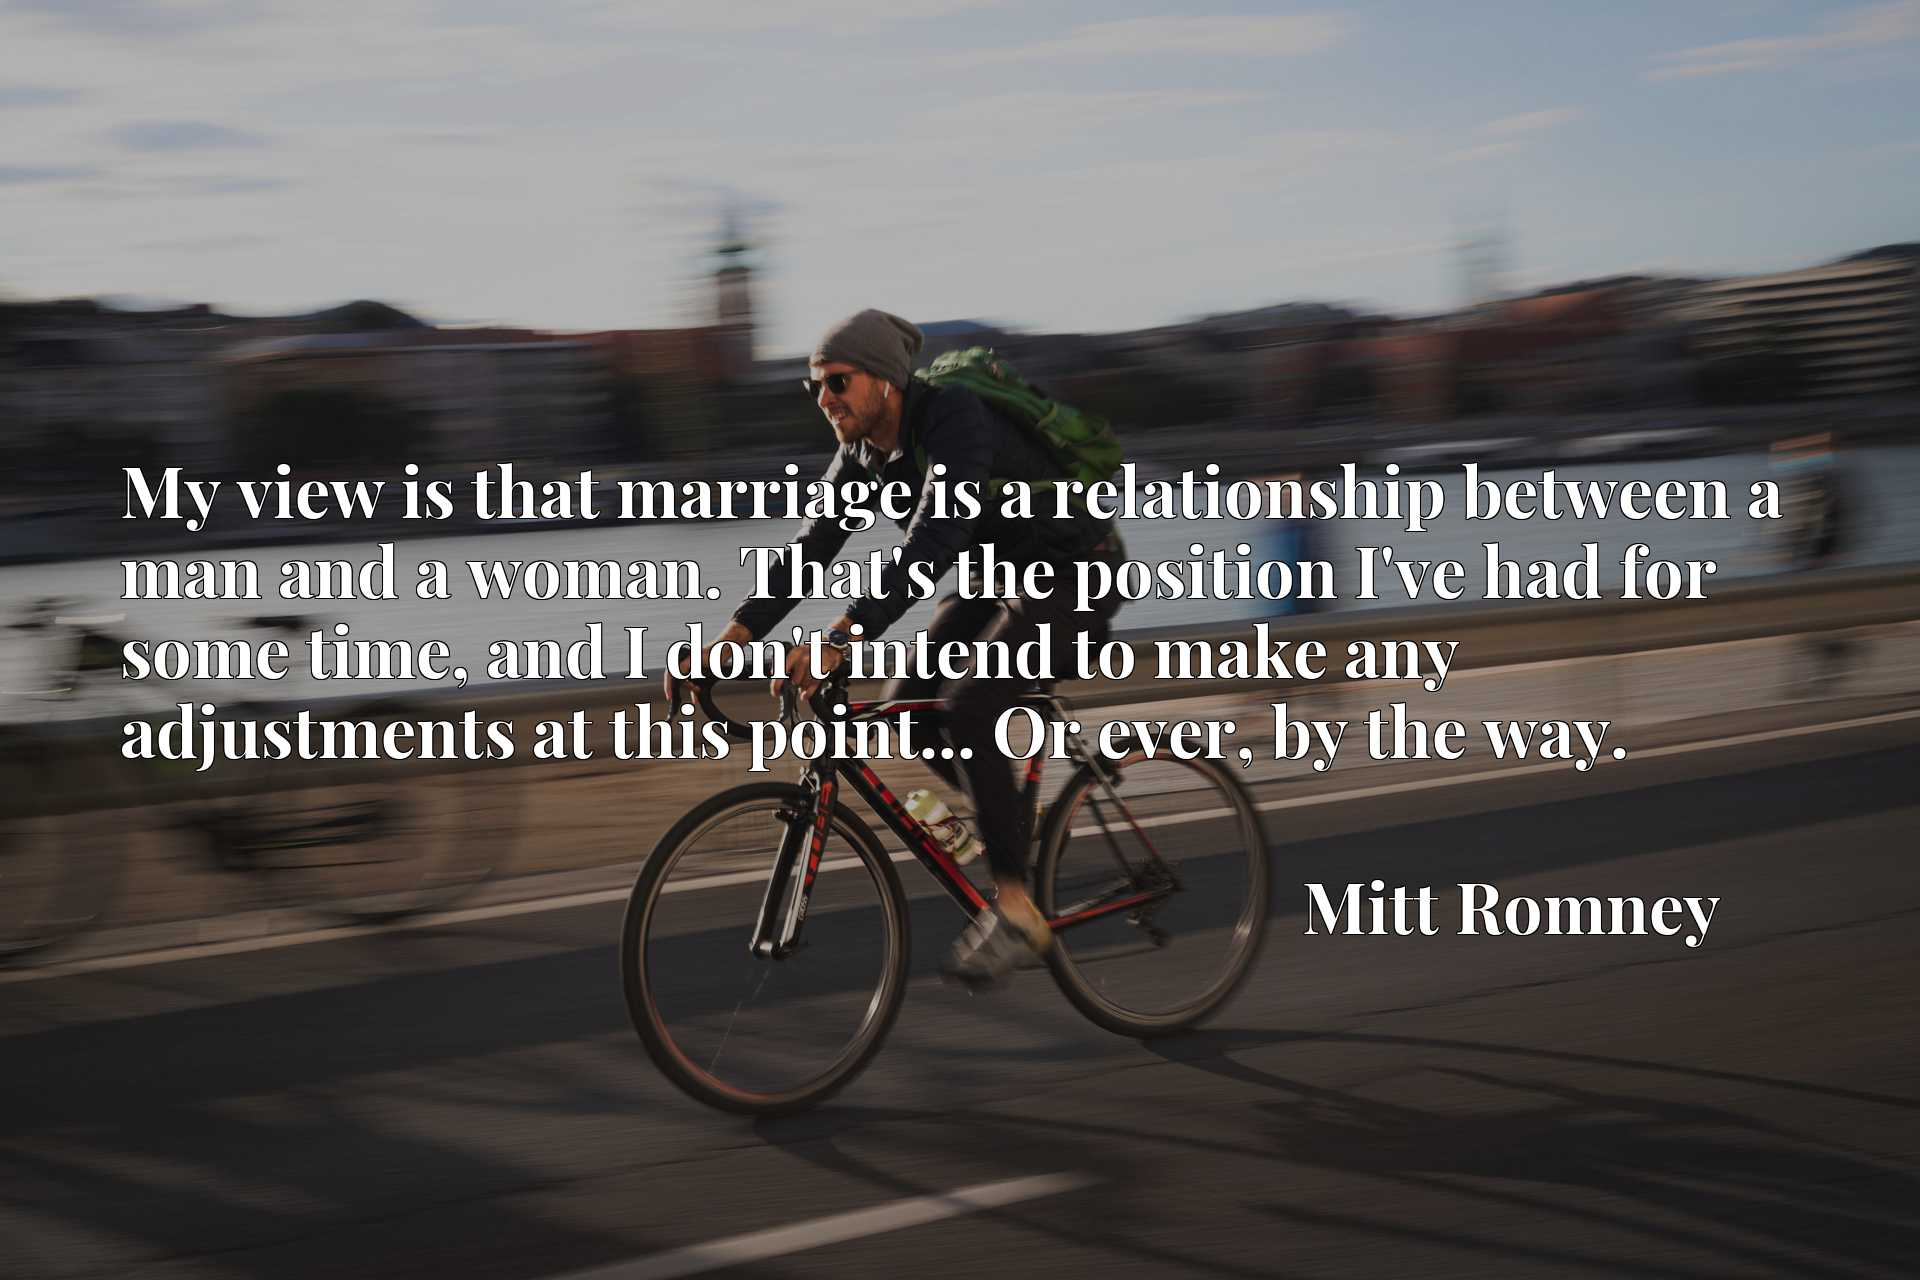 Quote Picture :My view is that marriage is a relationship between a man and a woman. That's the position I've had for some time, and I don't intend to make any adjustments at this point... Or ever, by the way.